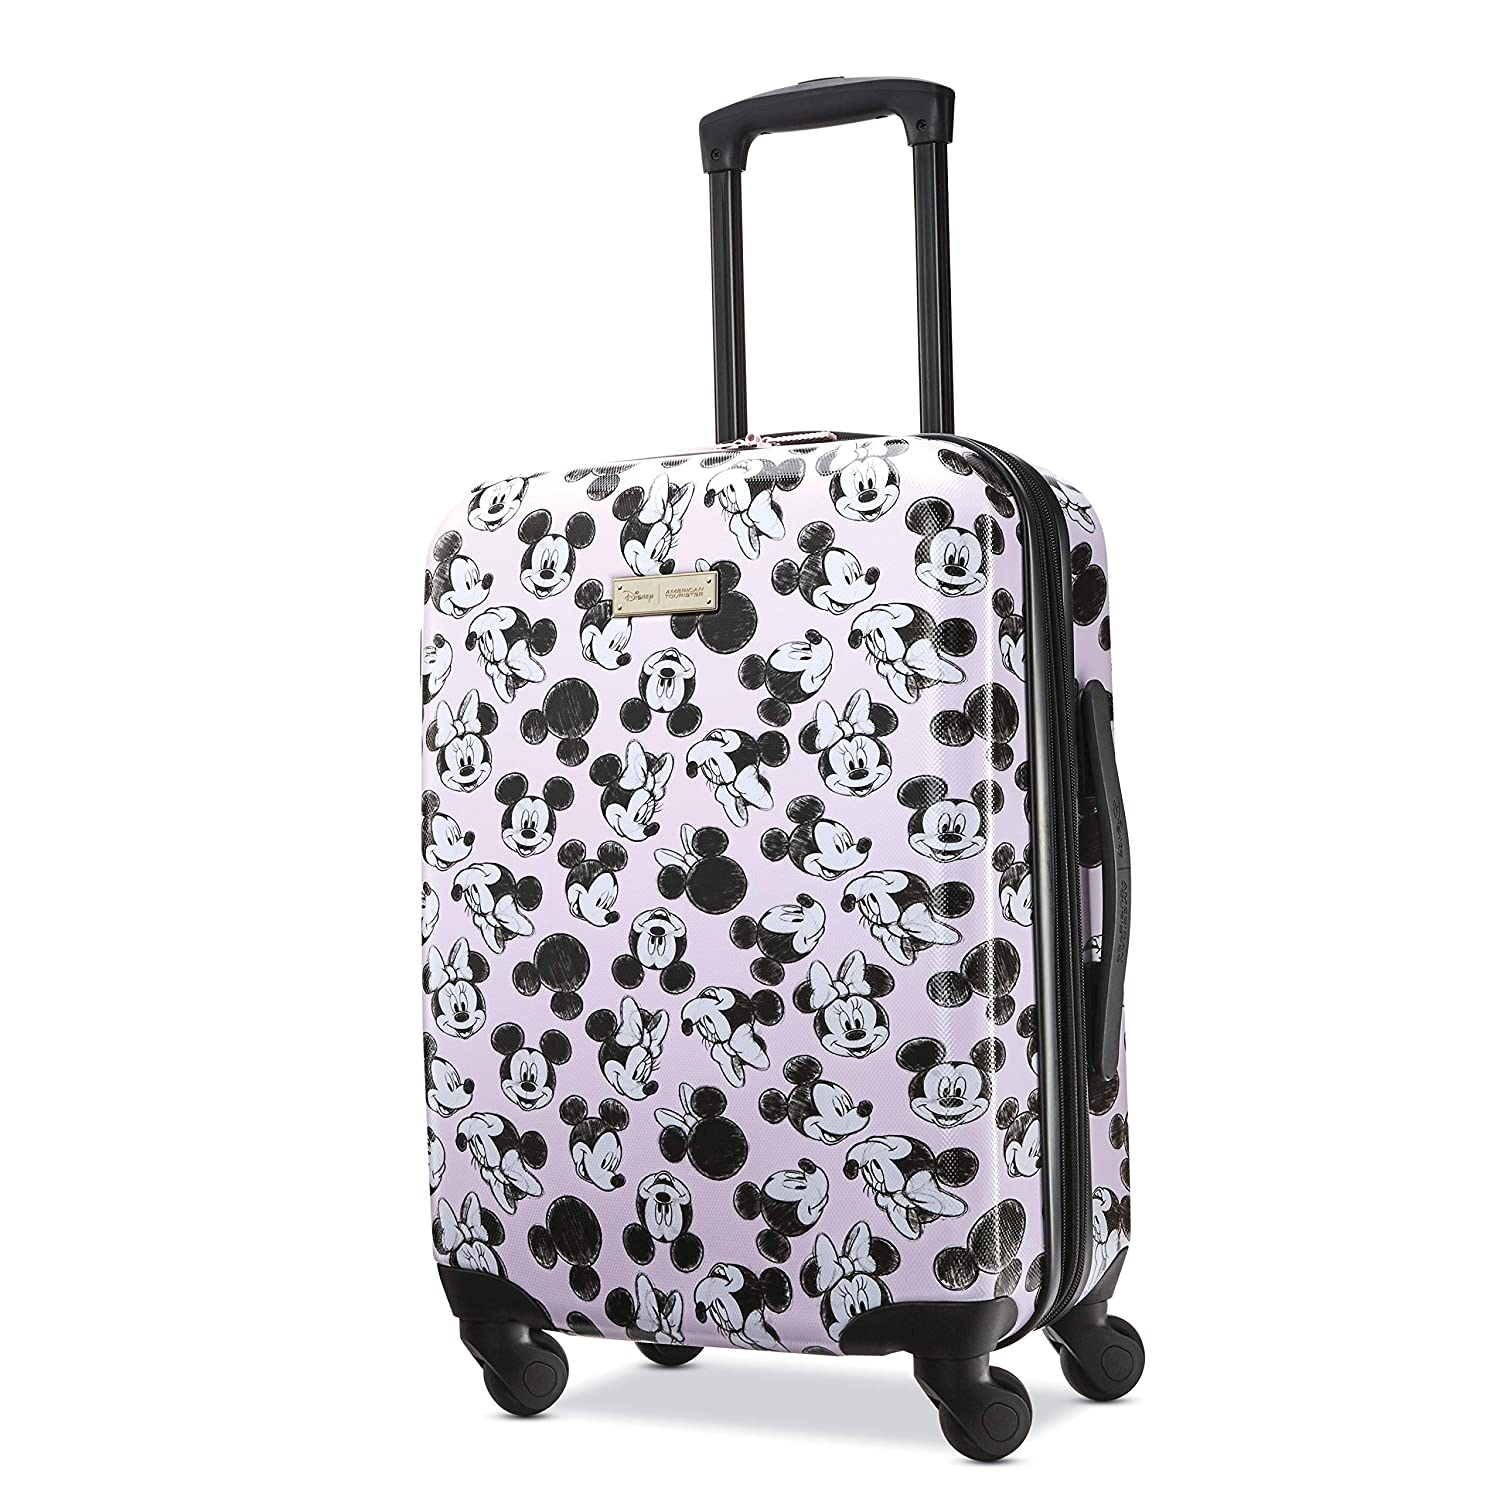 Image of American Tourister Carry-on, Minnie Loves Mickey Luggage